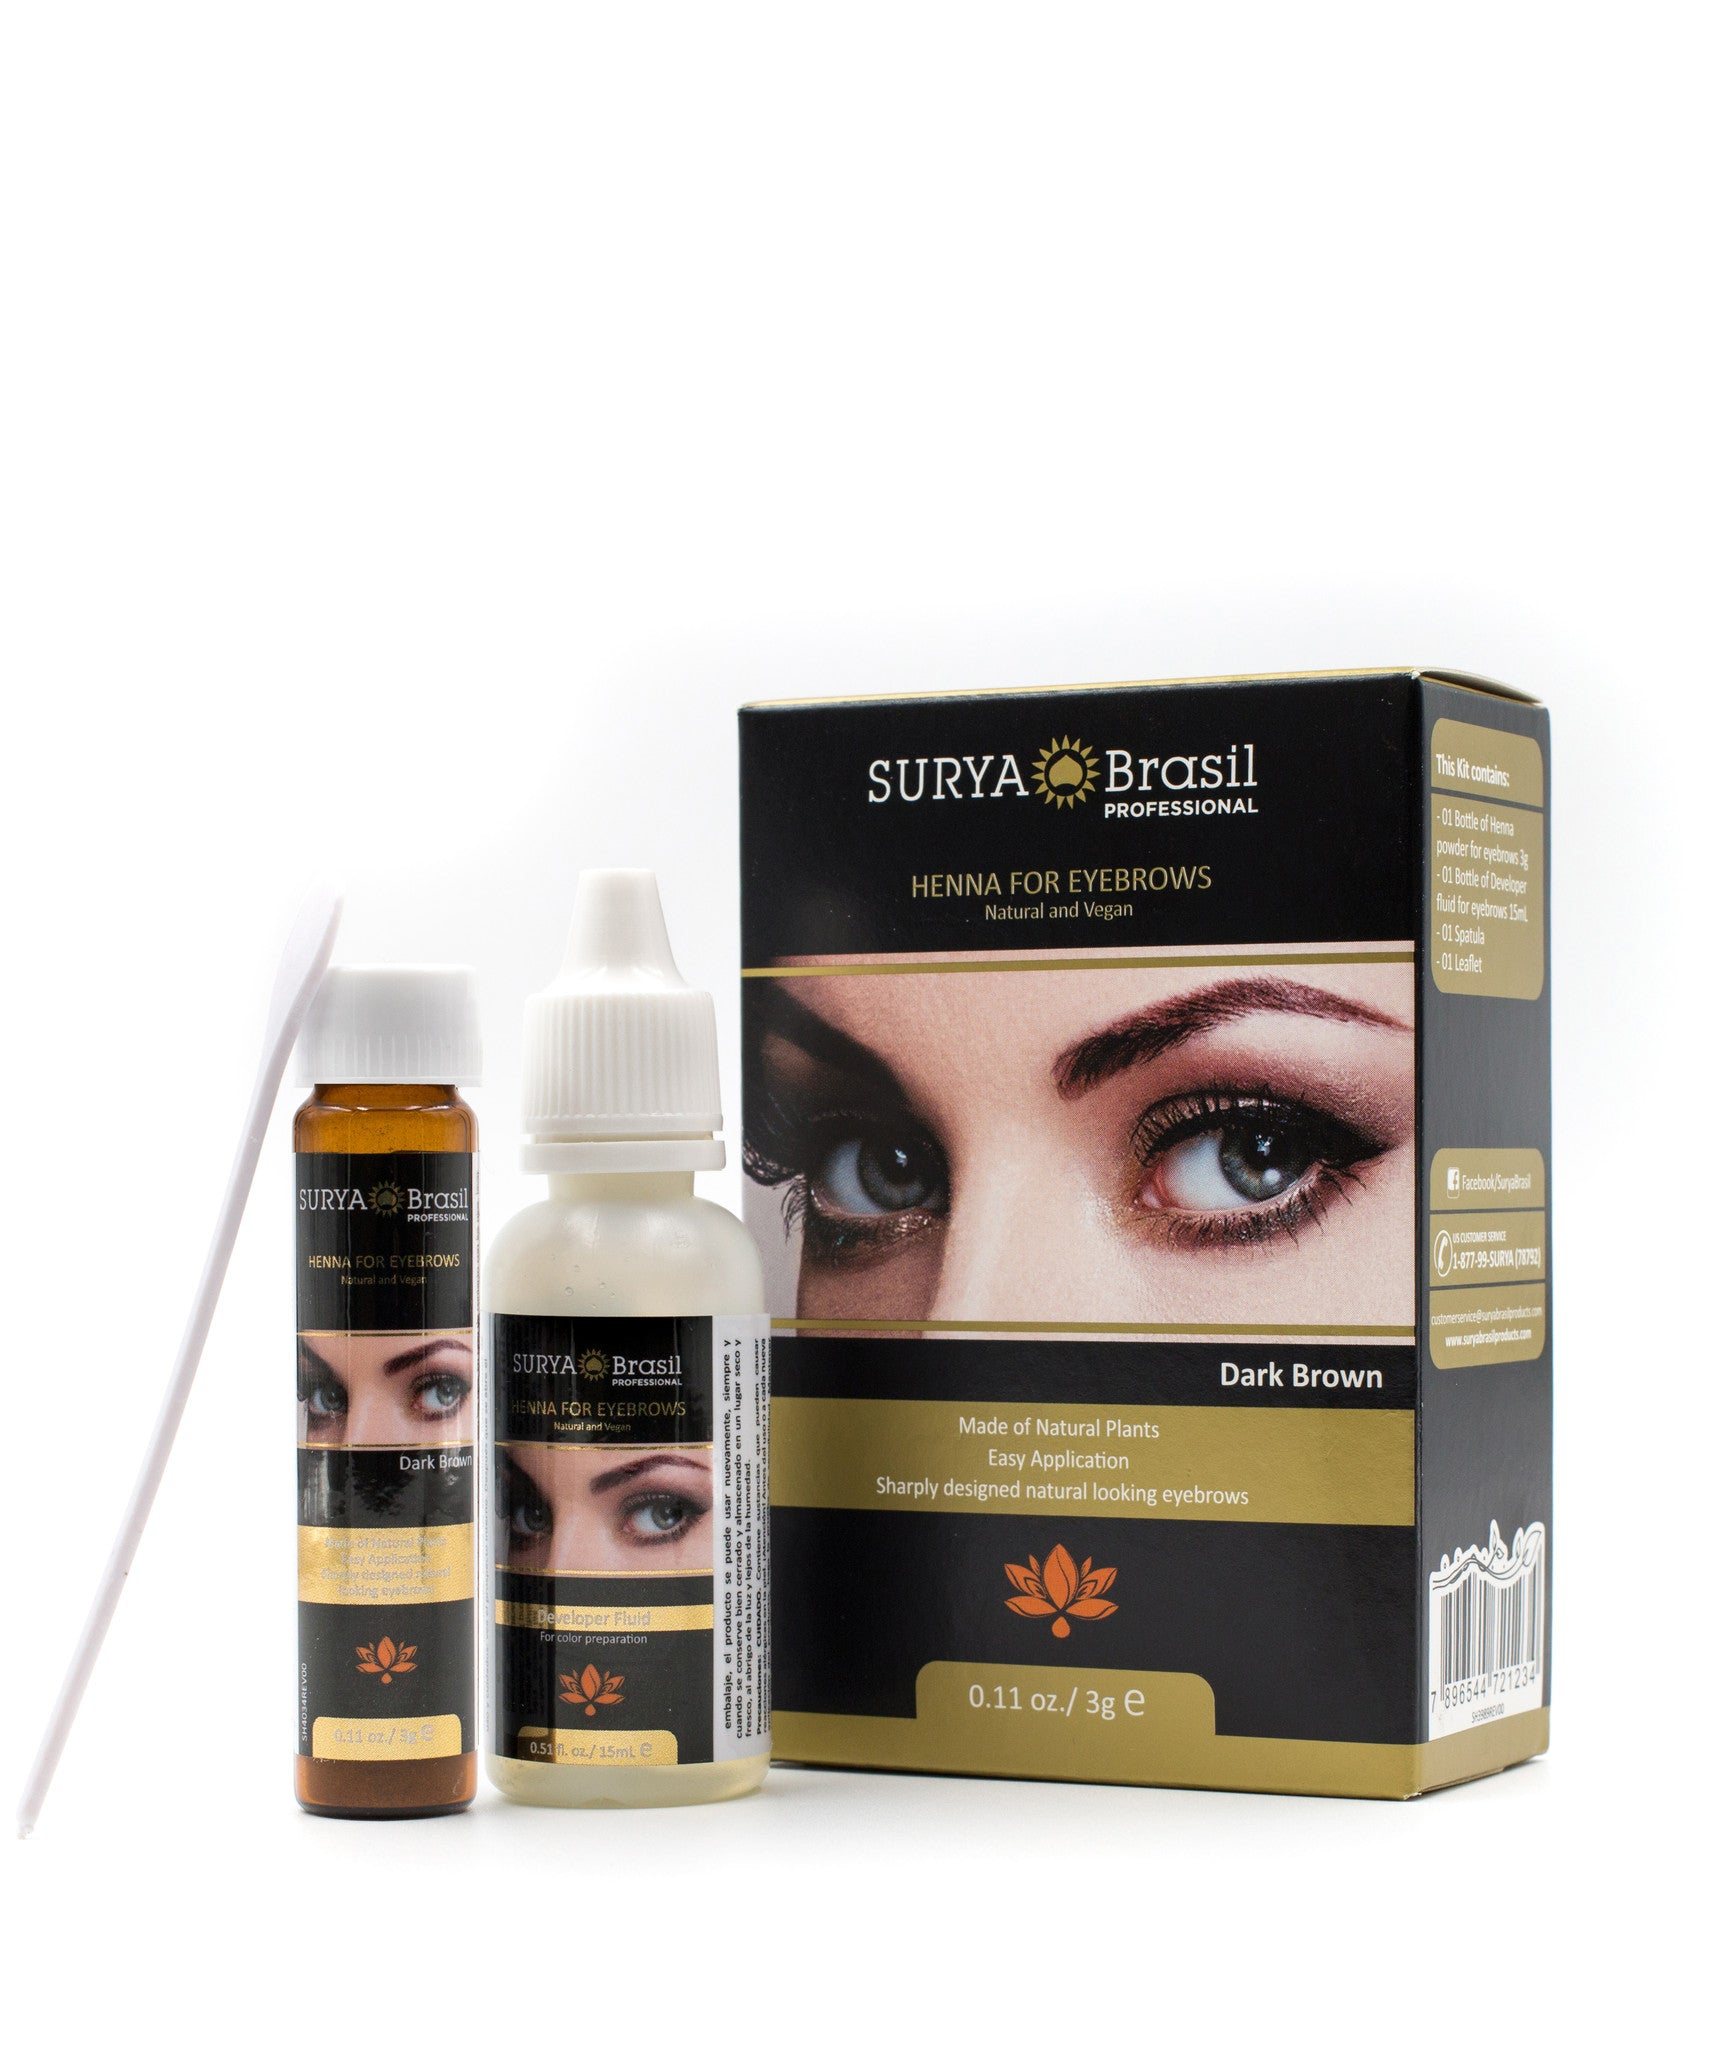 Dark Brown Henna Dye For Eyebrows Surya Brasil